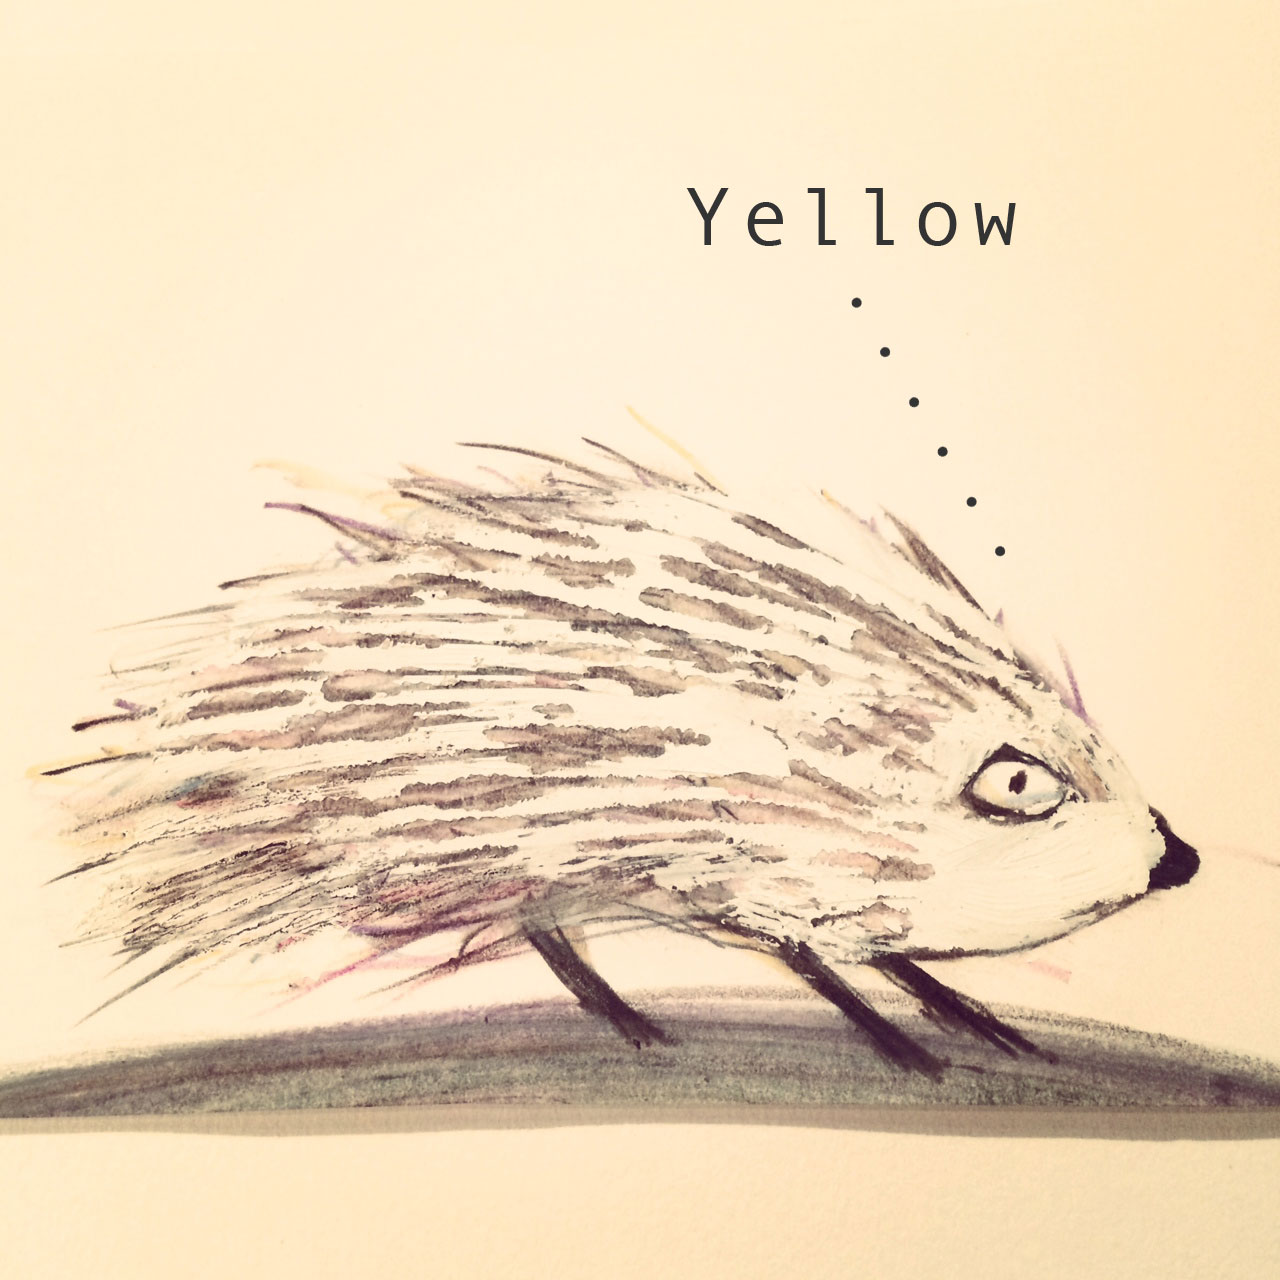 yellowhedgehog